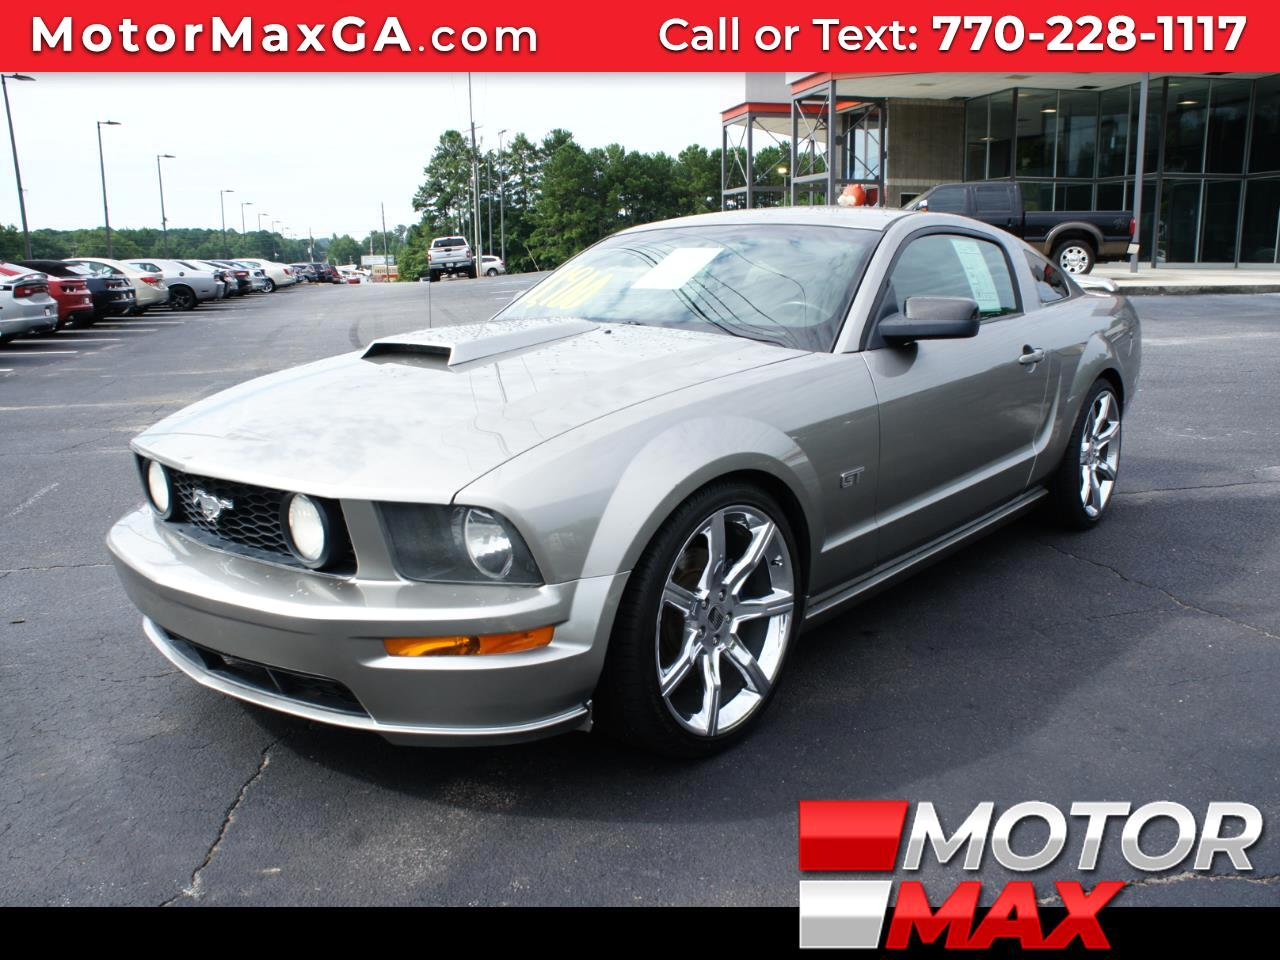 Ford Mustang 2dr Coupe GT 2008